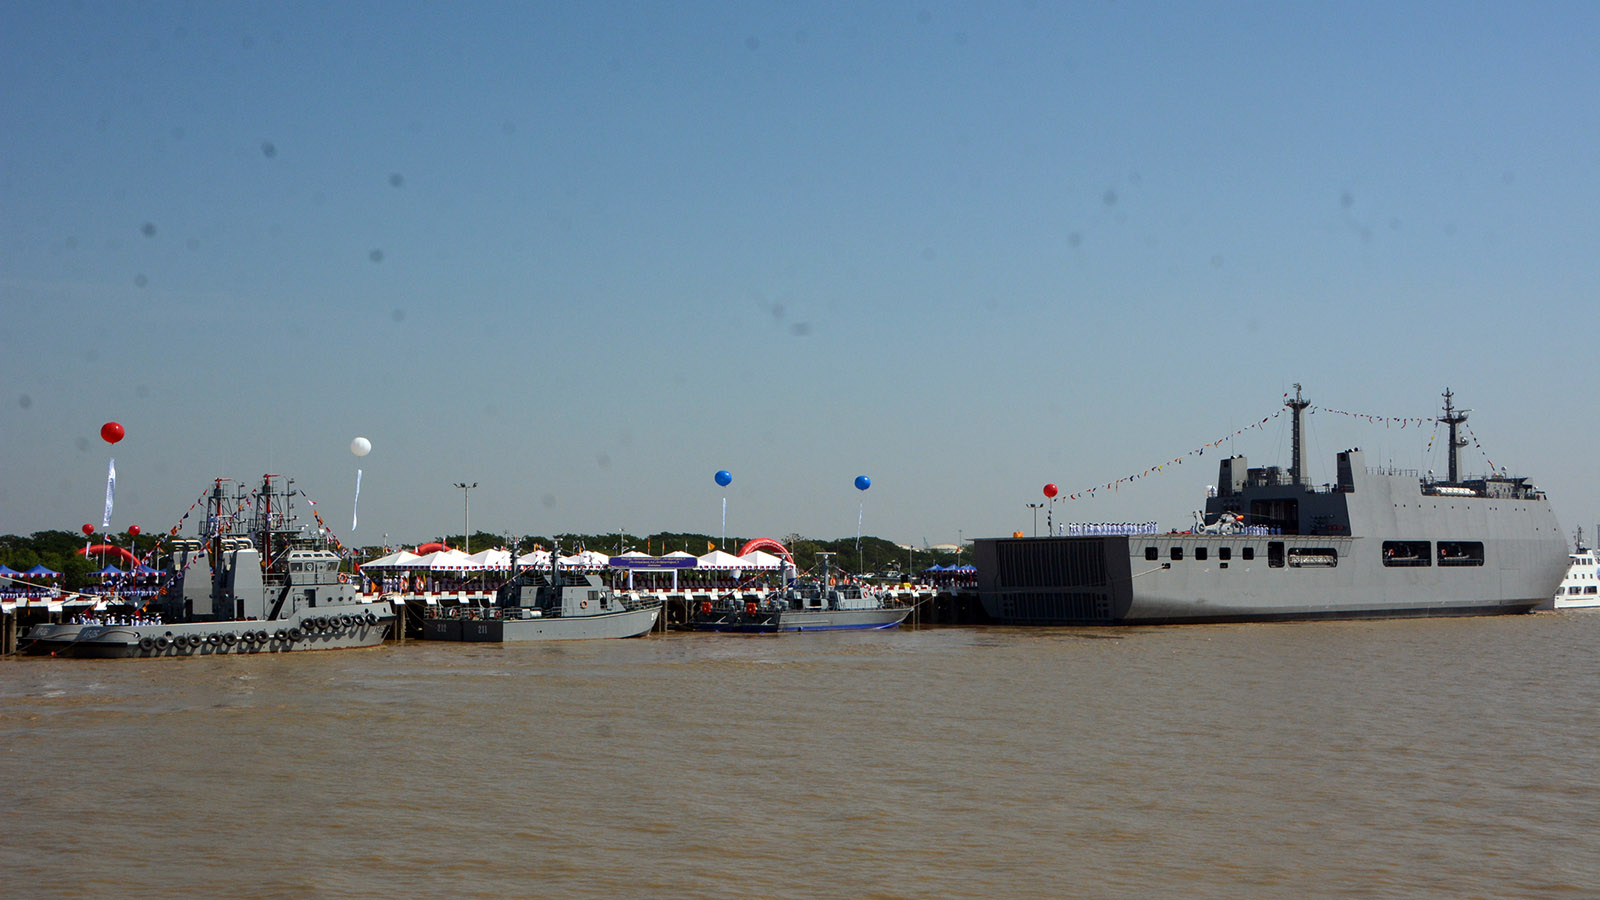 A commissioning ceremony of new naval vessels to mark the Myanmar Navy's 72nd anniversary held at the No. 3 Jetty of the Navy in Yangon.Photo: Office of the Commander-in-Chief of Defence Services